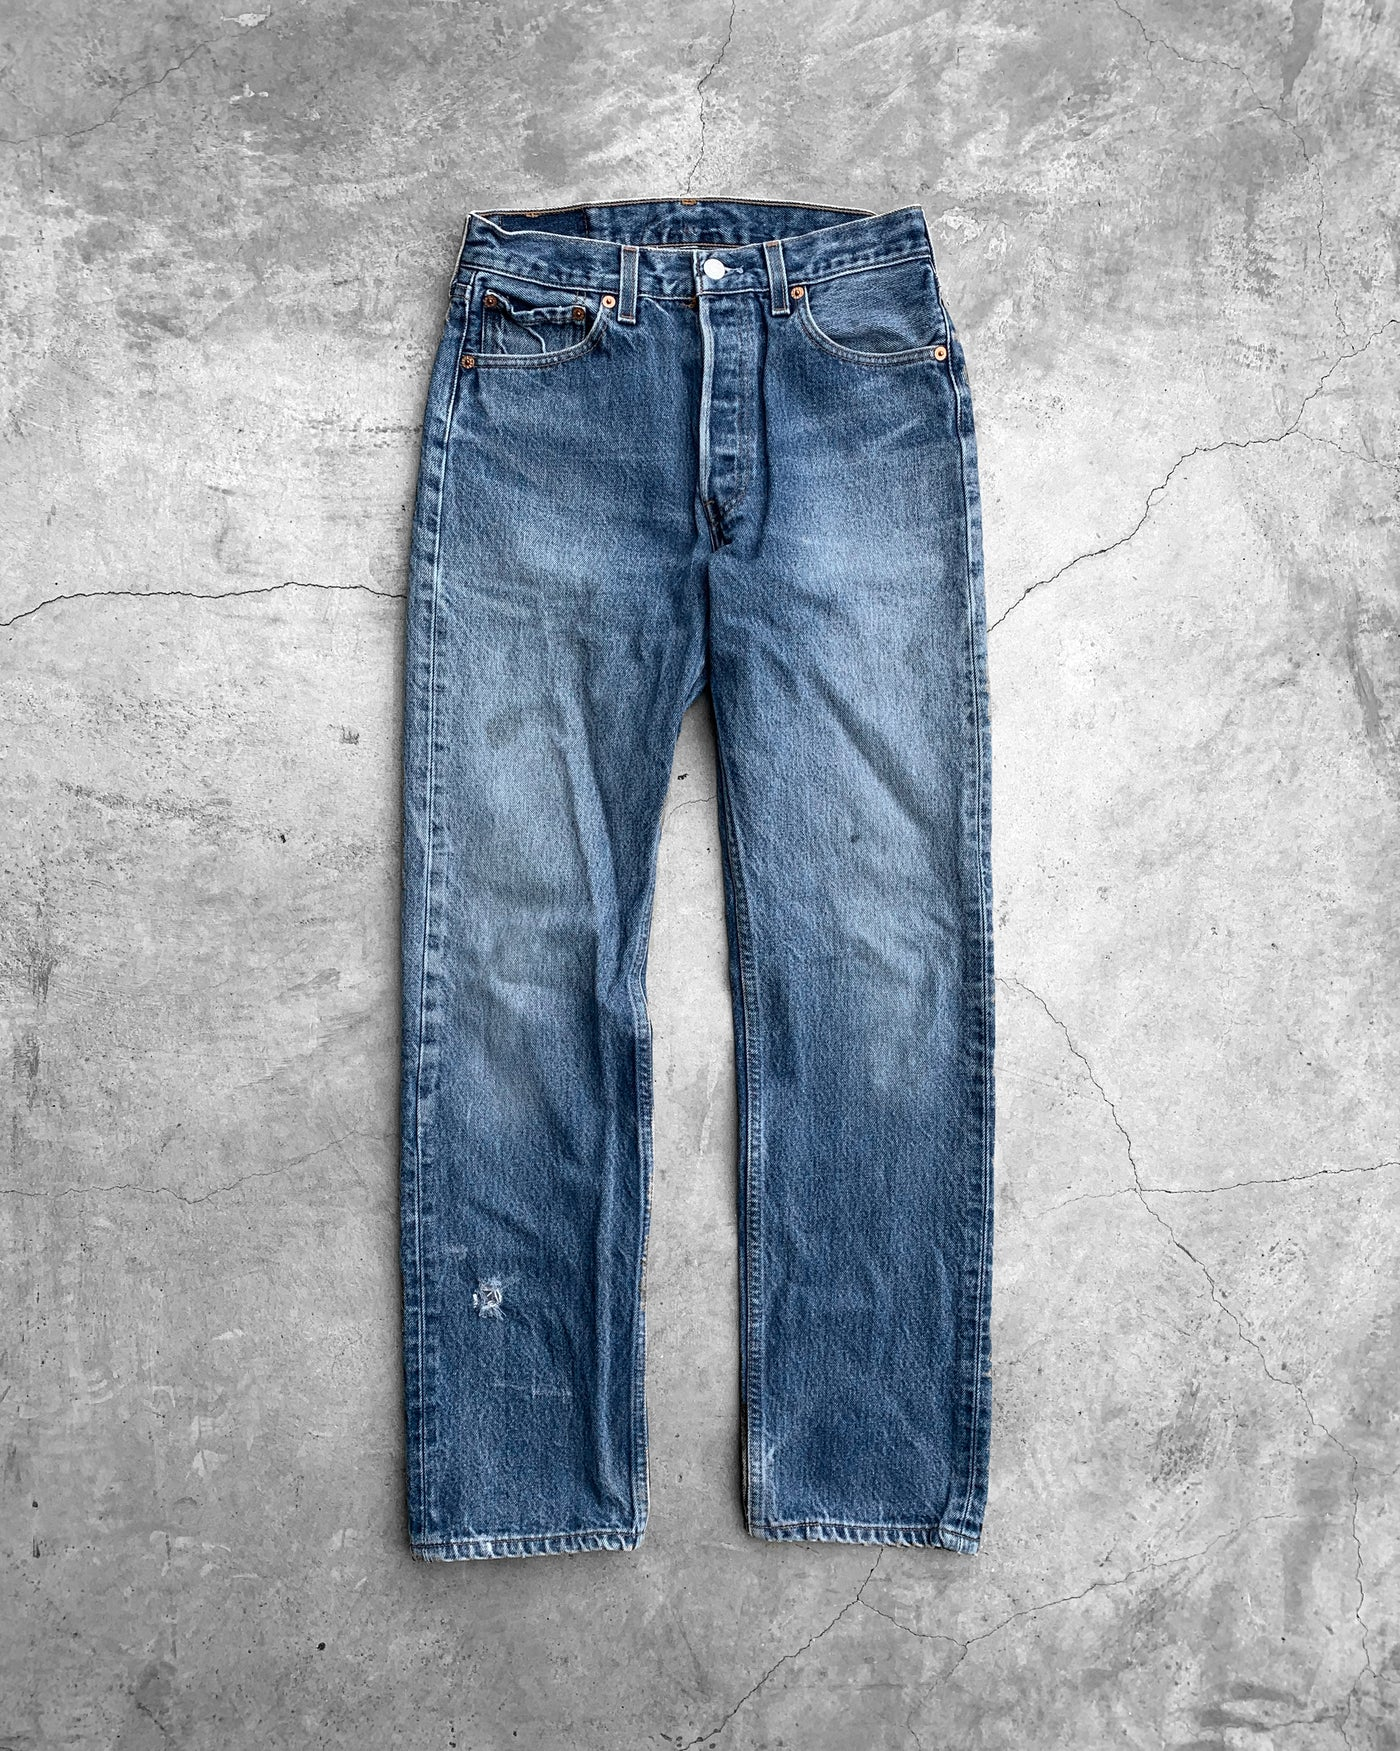 Levi's 501xx Faded Denim Jeans - 1990s